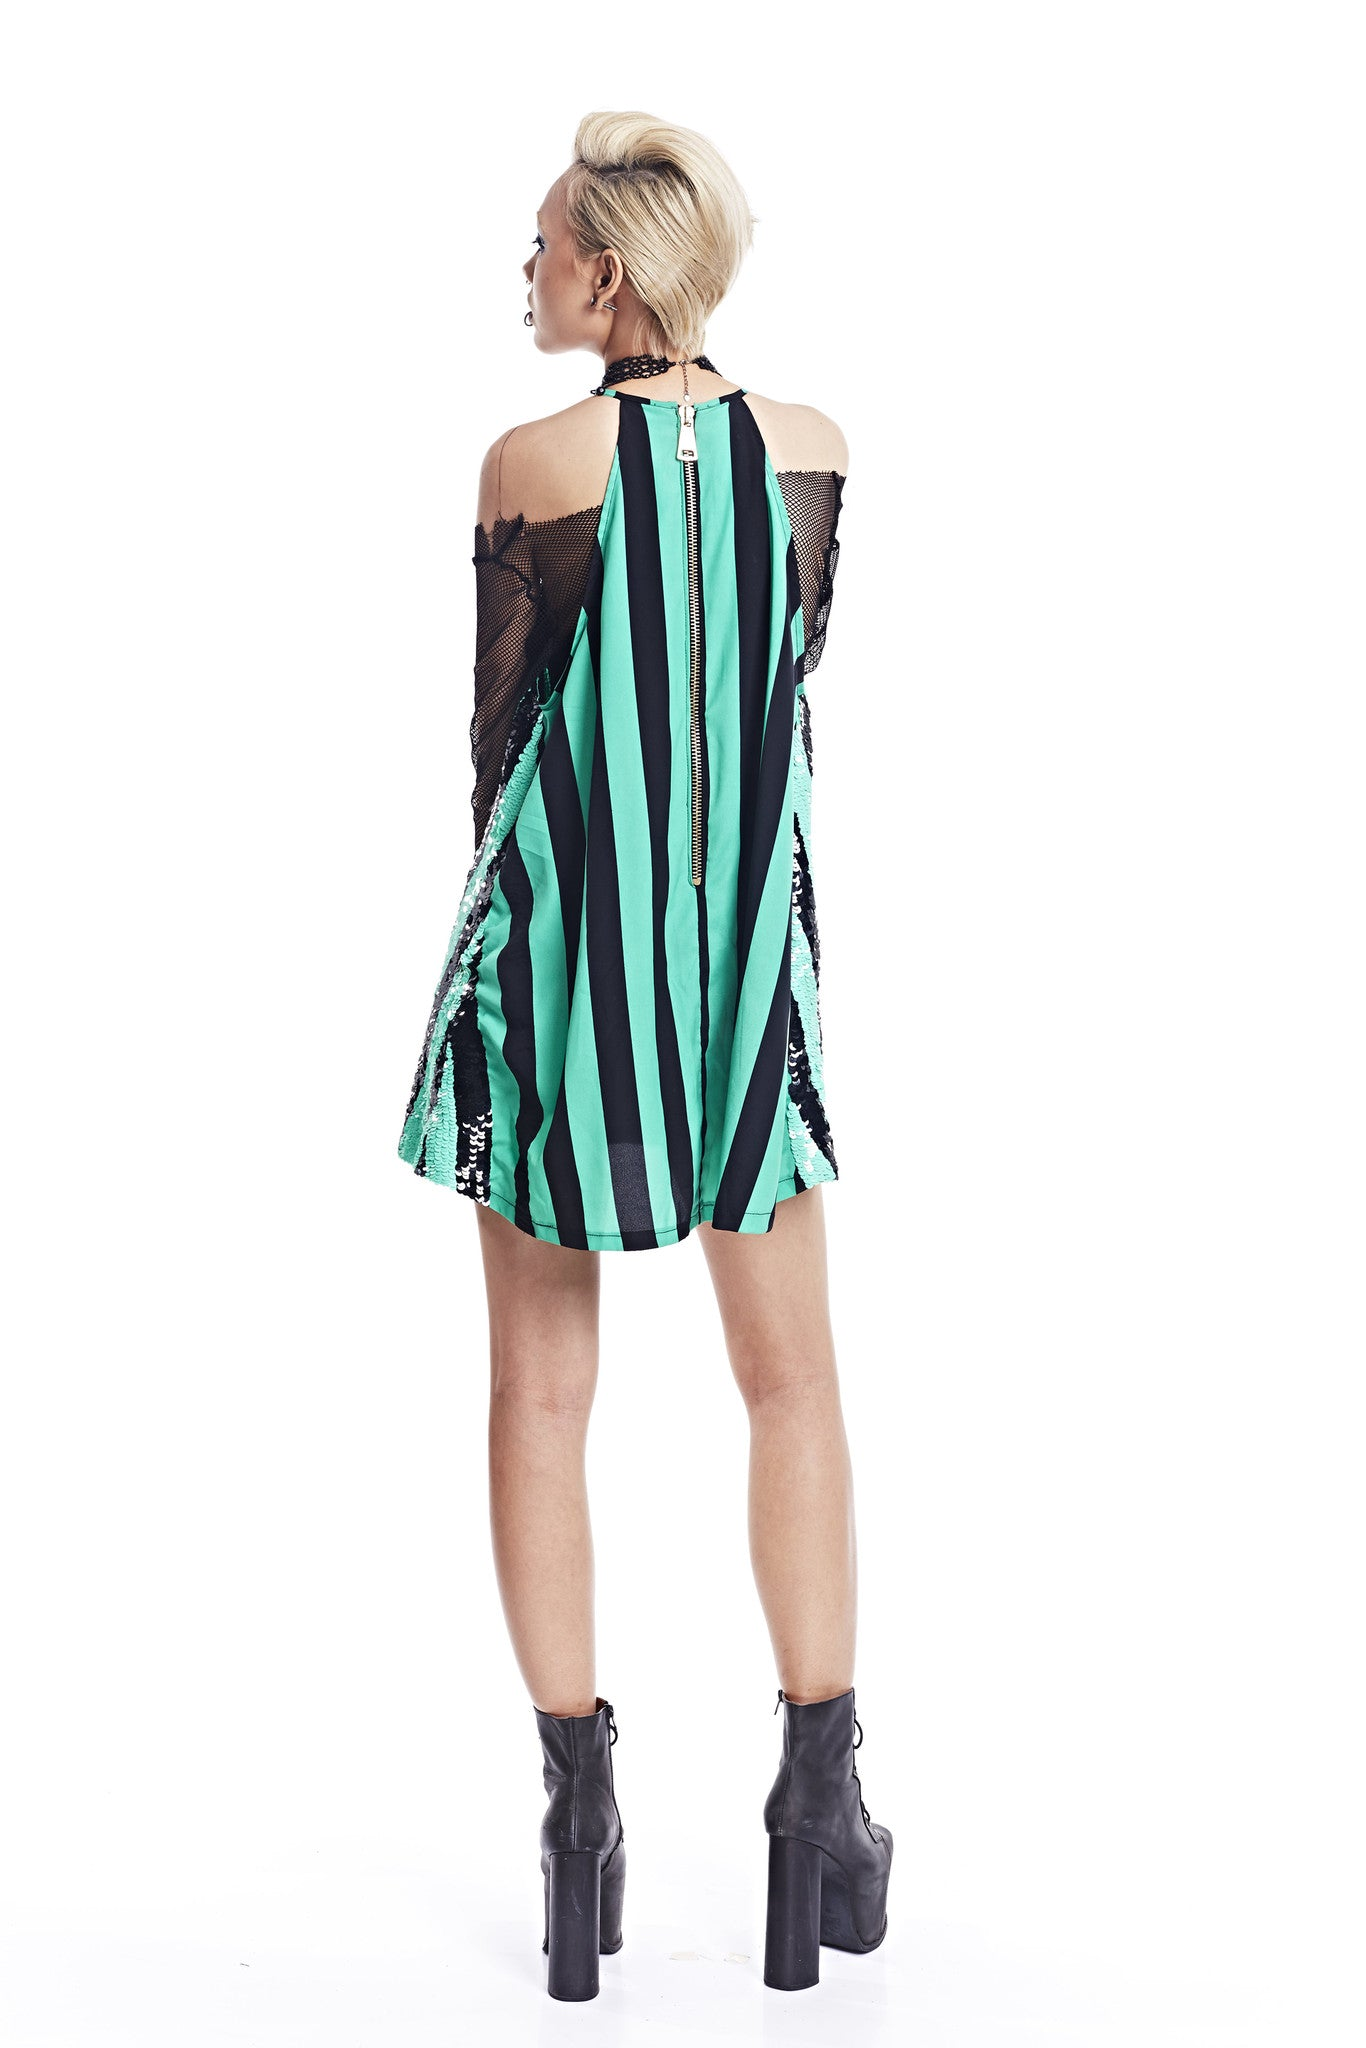 Striped Dress - Green - I LOVE DIY by Panida